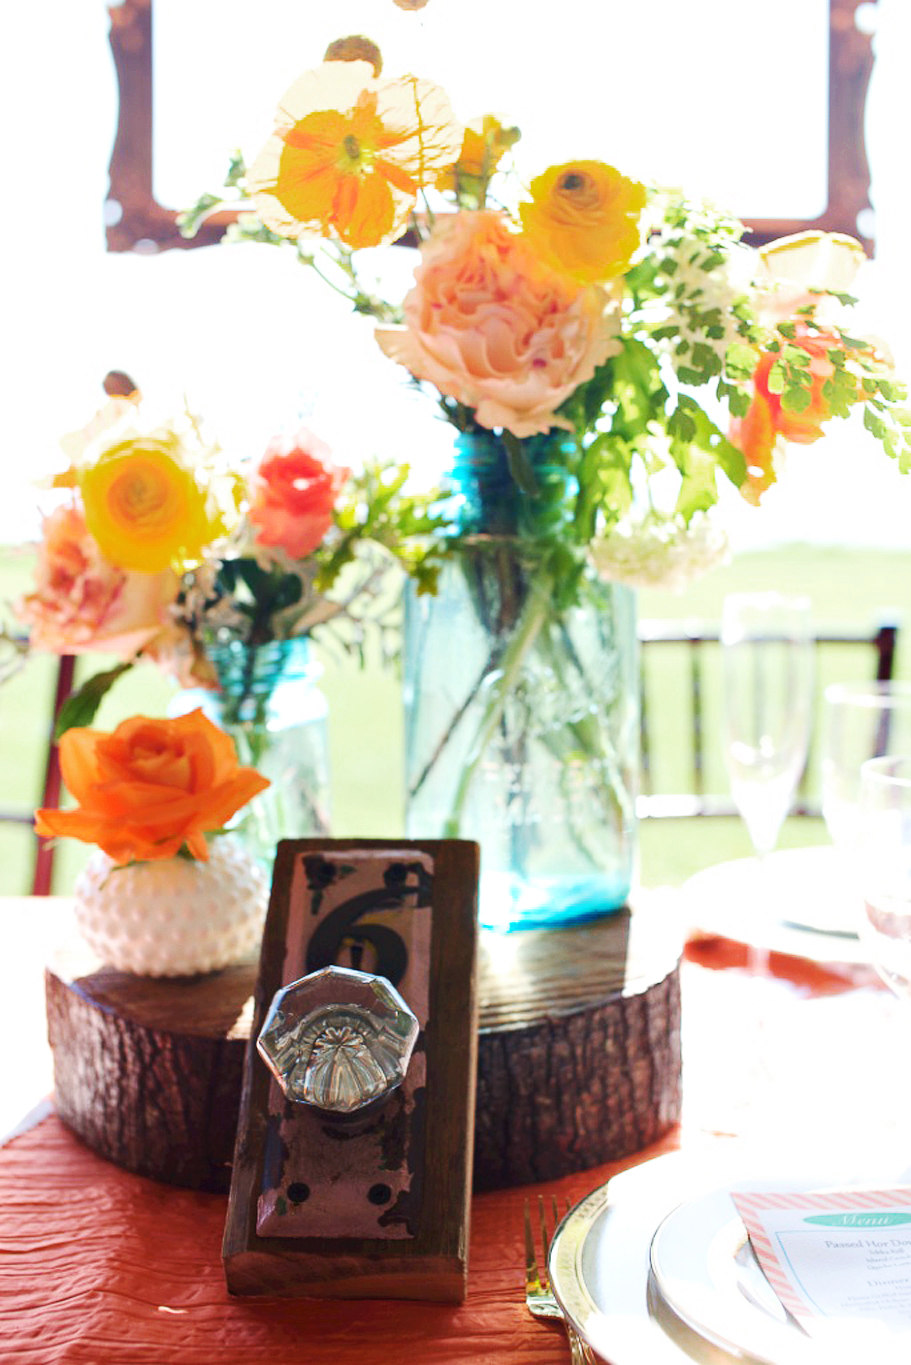 Rustic Citrus Wedding Inspiration Outdoor Spring Ideas Mason Jar Centerpieces